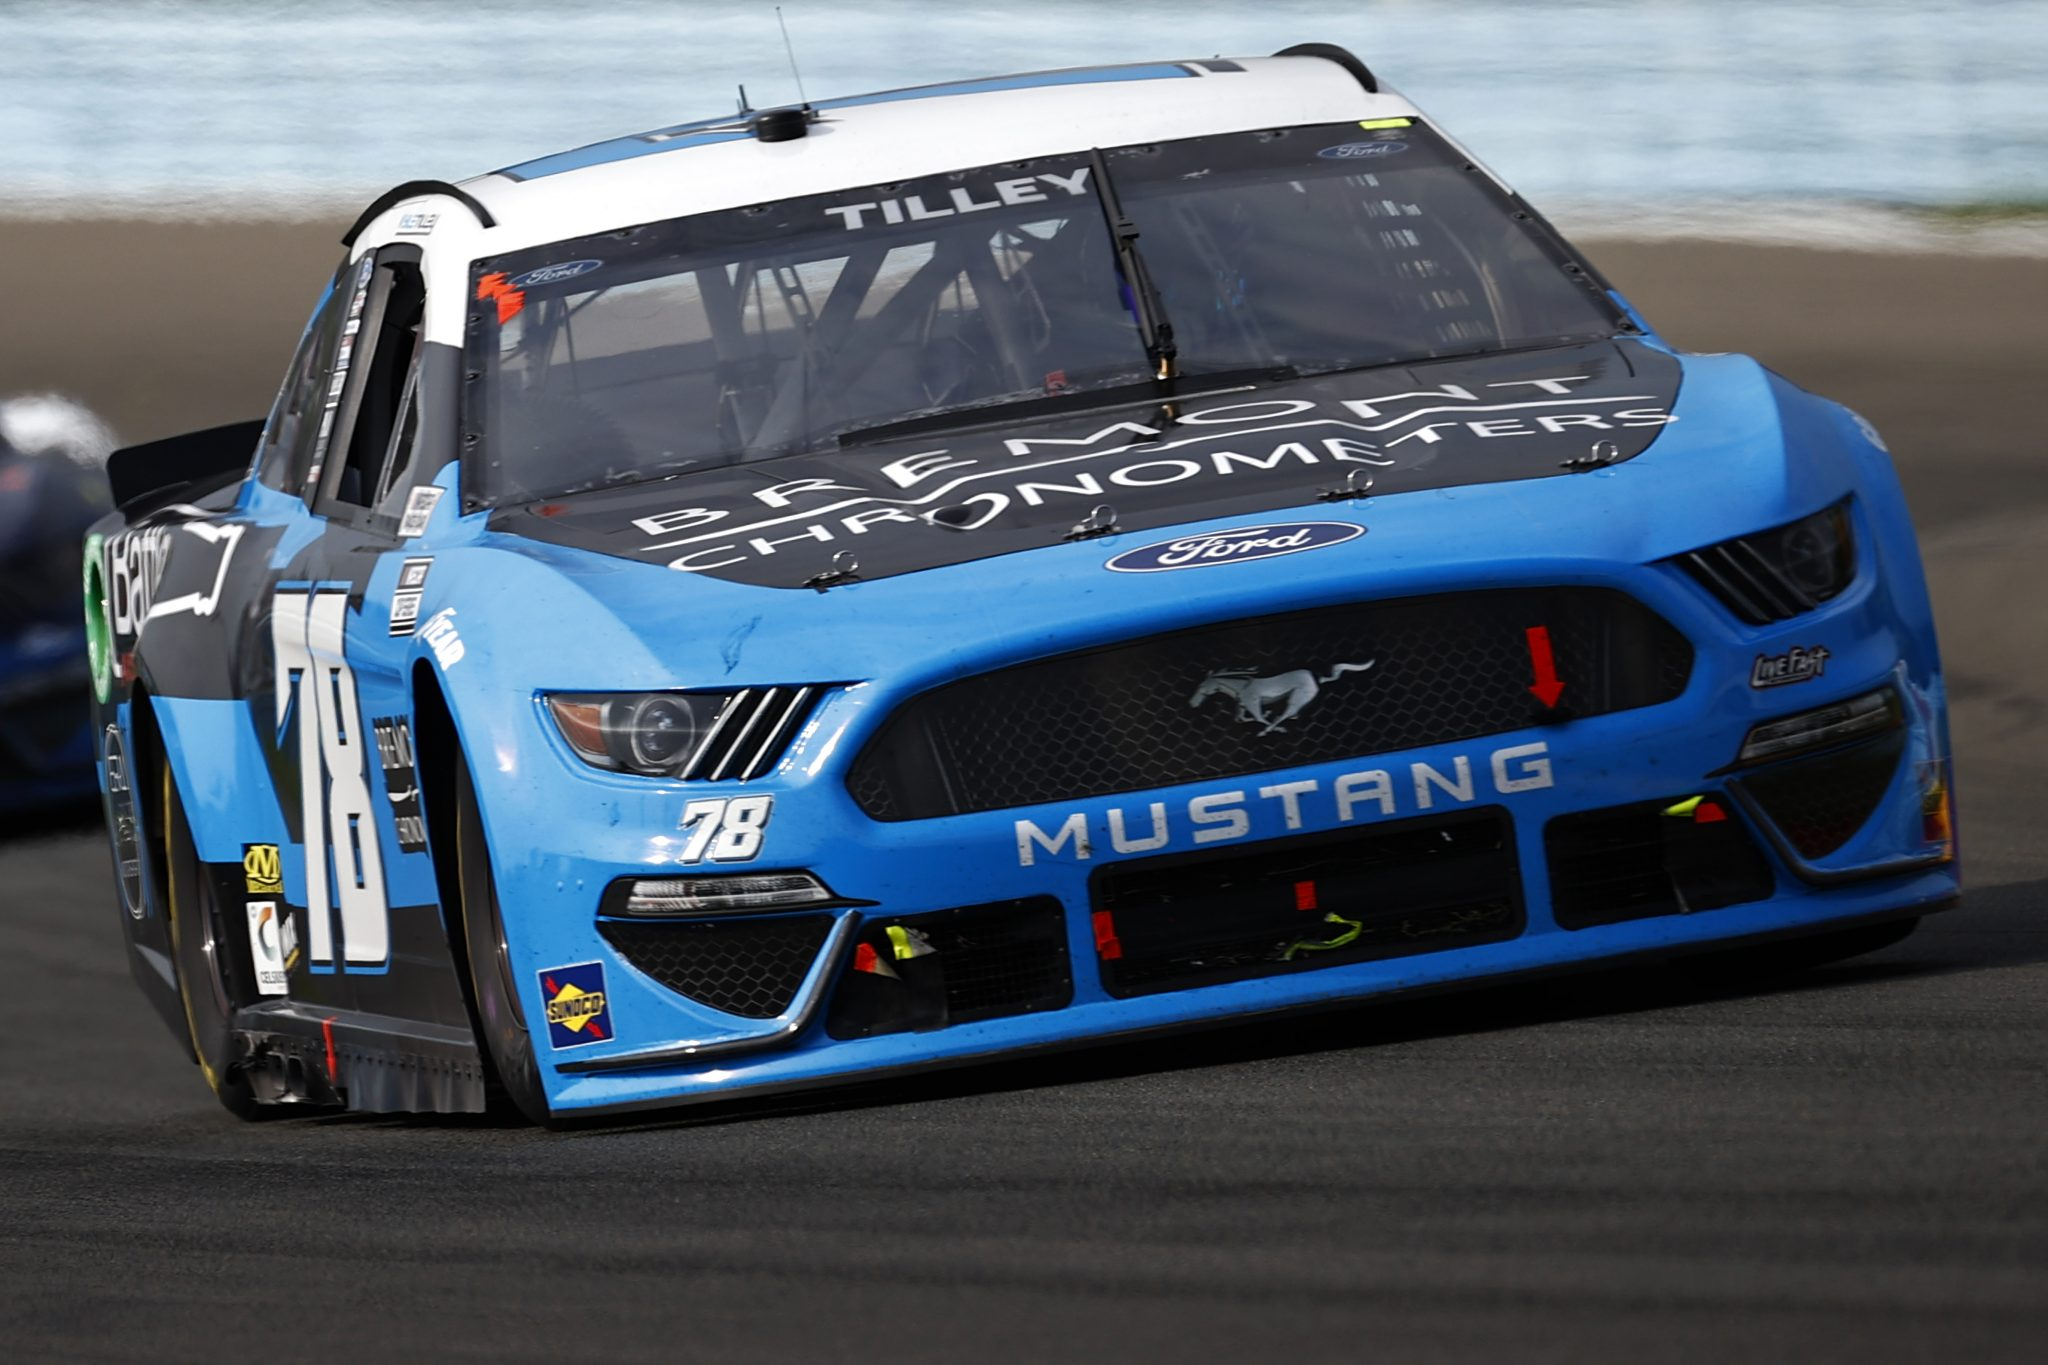 WATKINS GLEN, NEW YORK - AUGUST 08: Kyle Tilley, driver of the #78 Bremont Chronometers Ford, drives during the NASCAR Cup Series Go Bowling at The Glen at Watkins Glen International on August 08, 2021 in Watkins Glen, New York. (Photo by Jared C. Tilton/Getty Images)   Getty Images